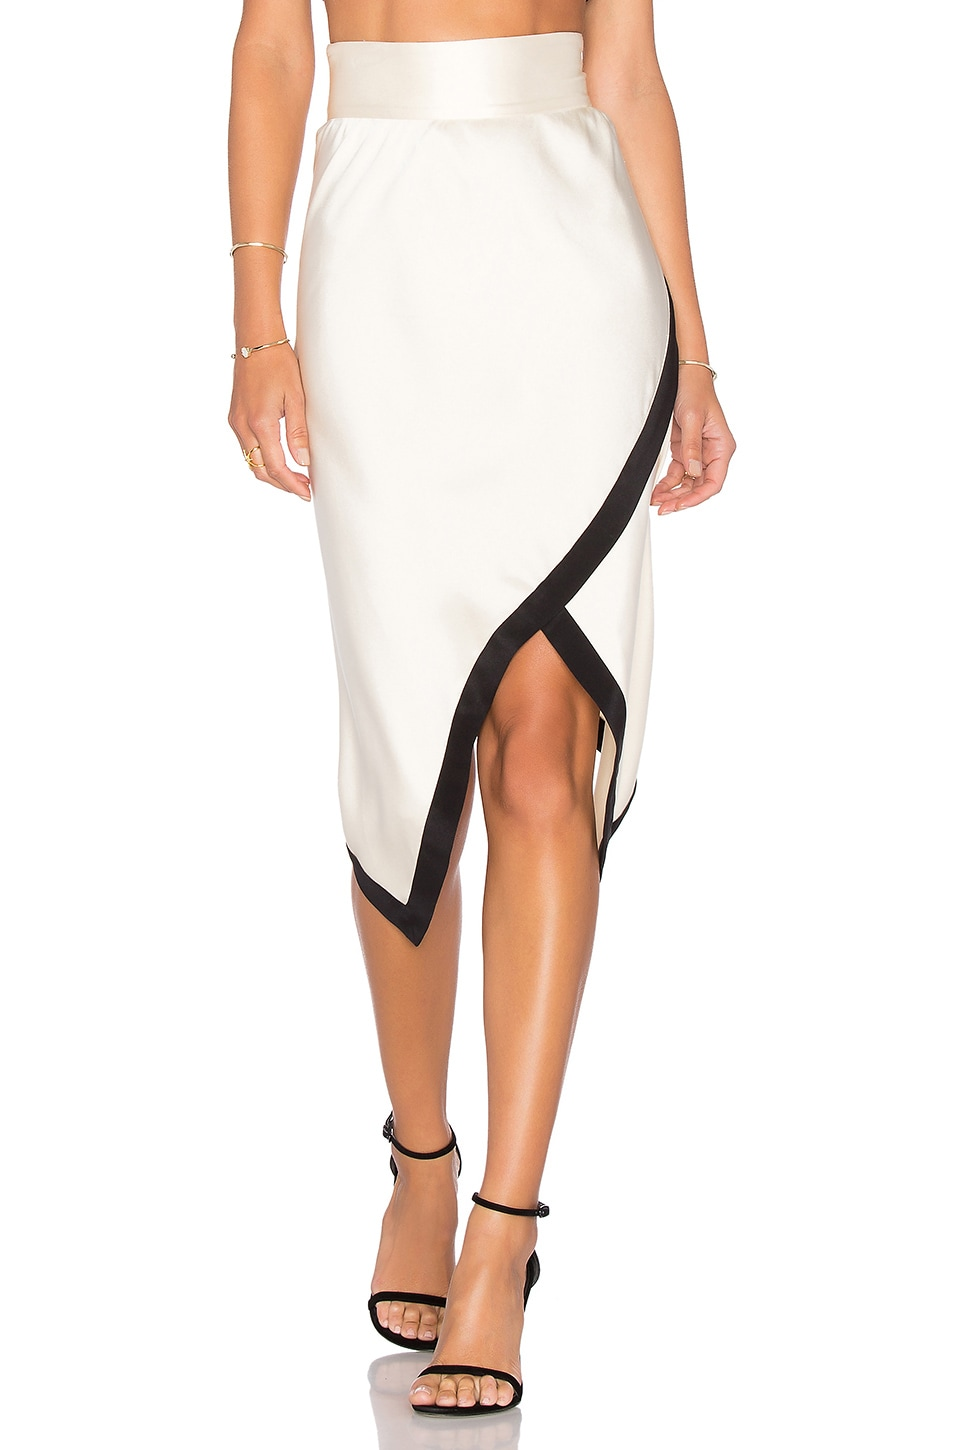 The Go Too Skirt by KITX